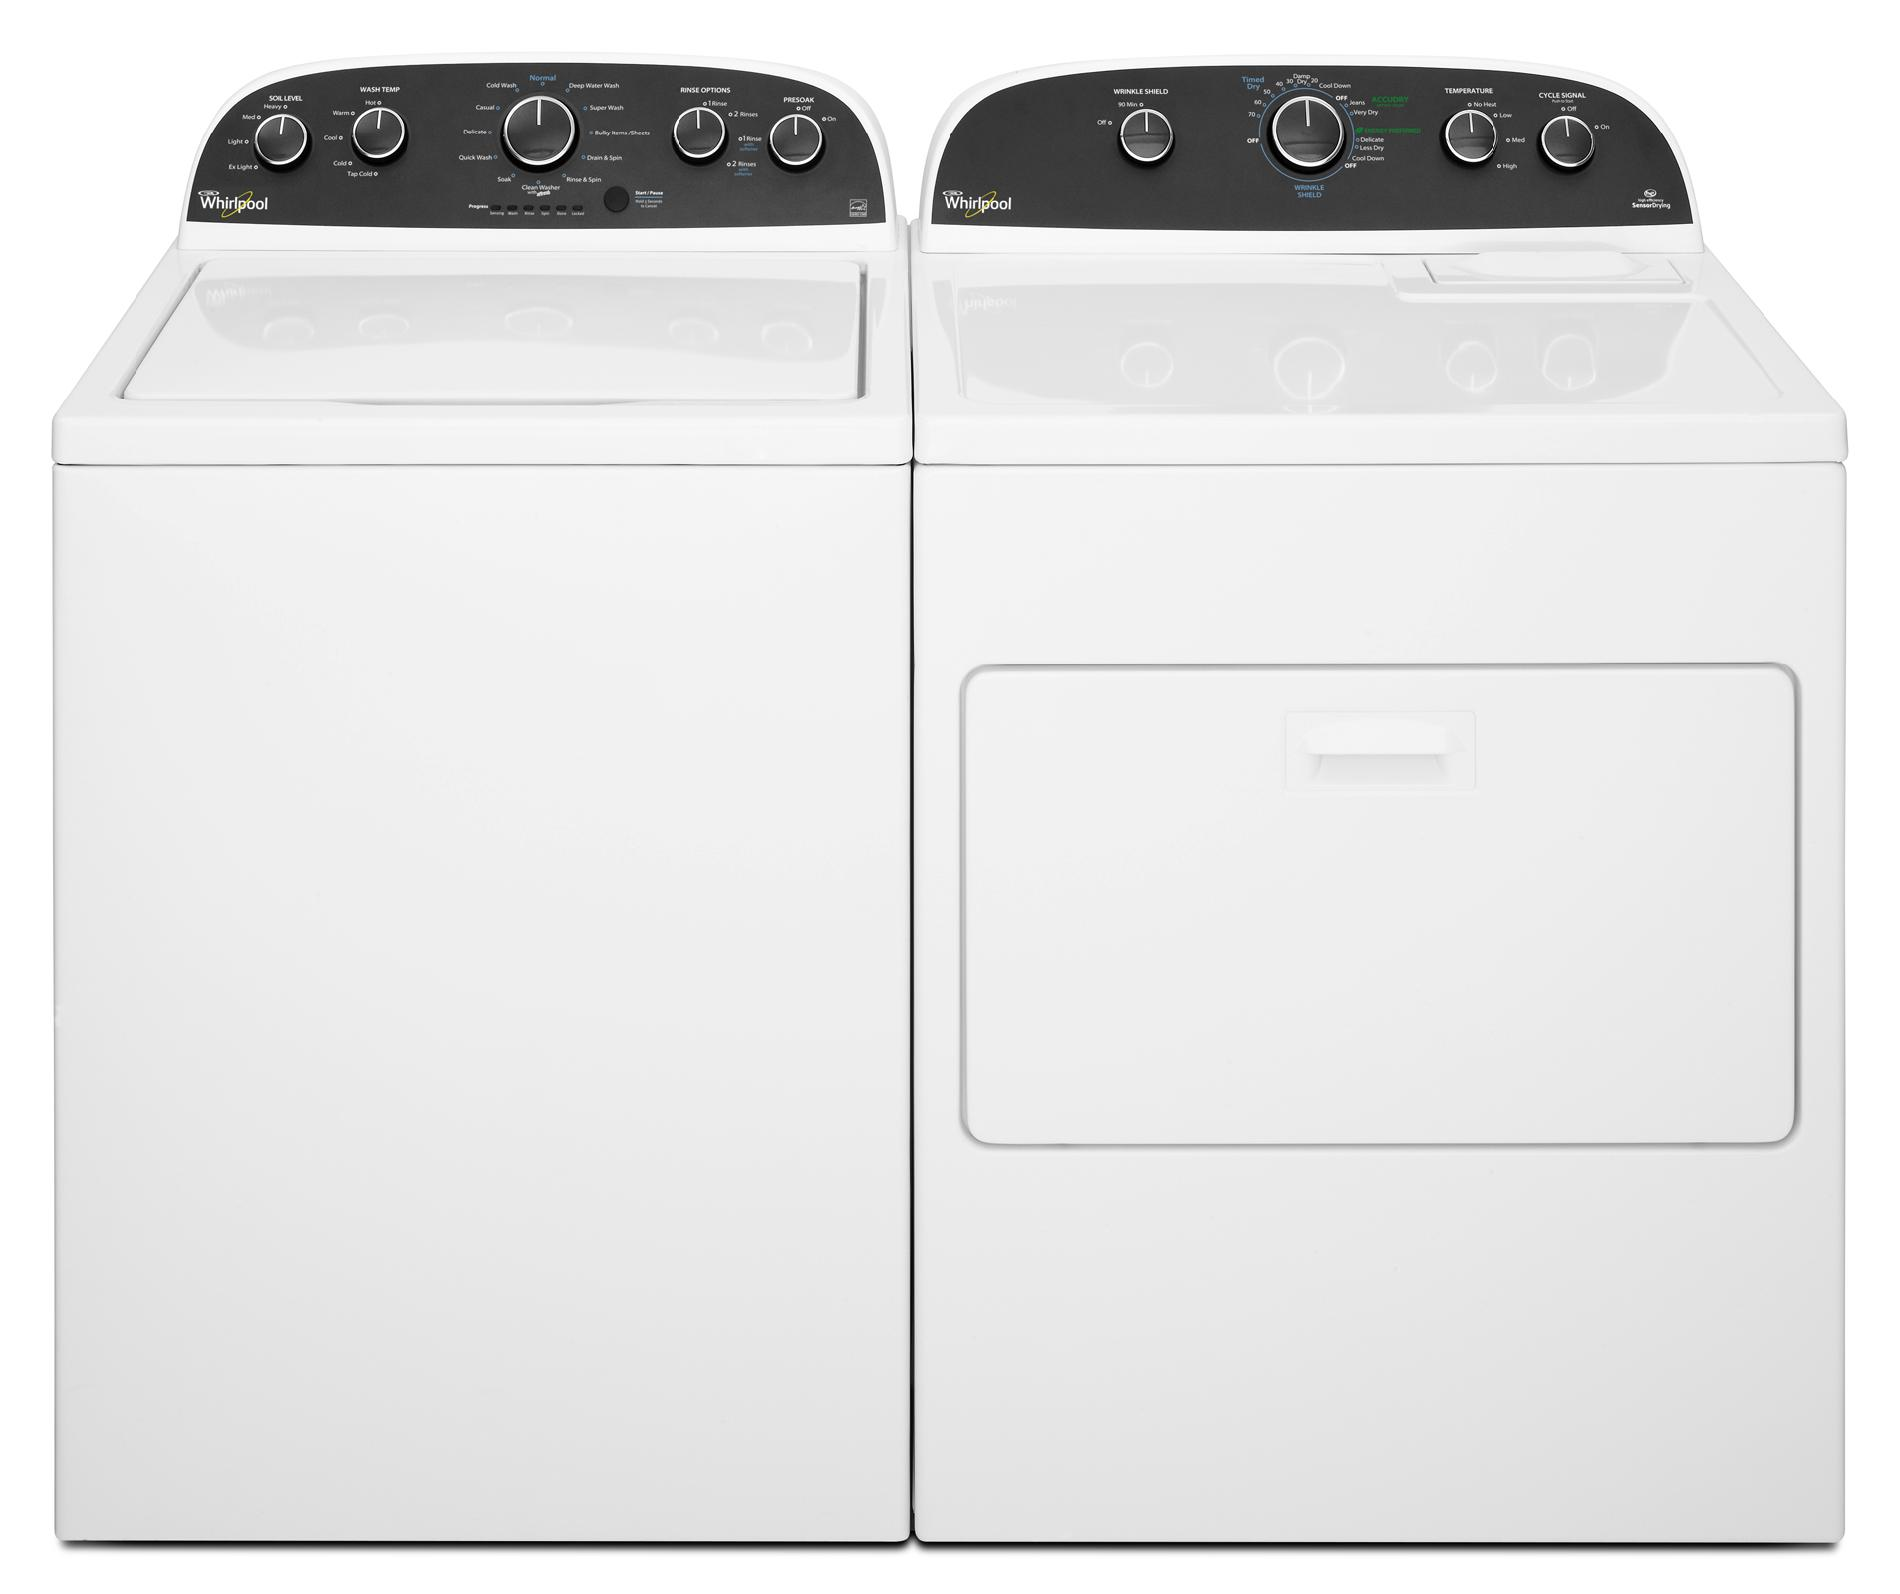 Whirlpool 3.6 cu. ft. Top-Load Washer - White